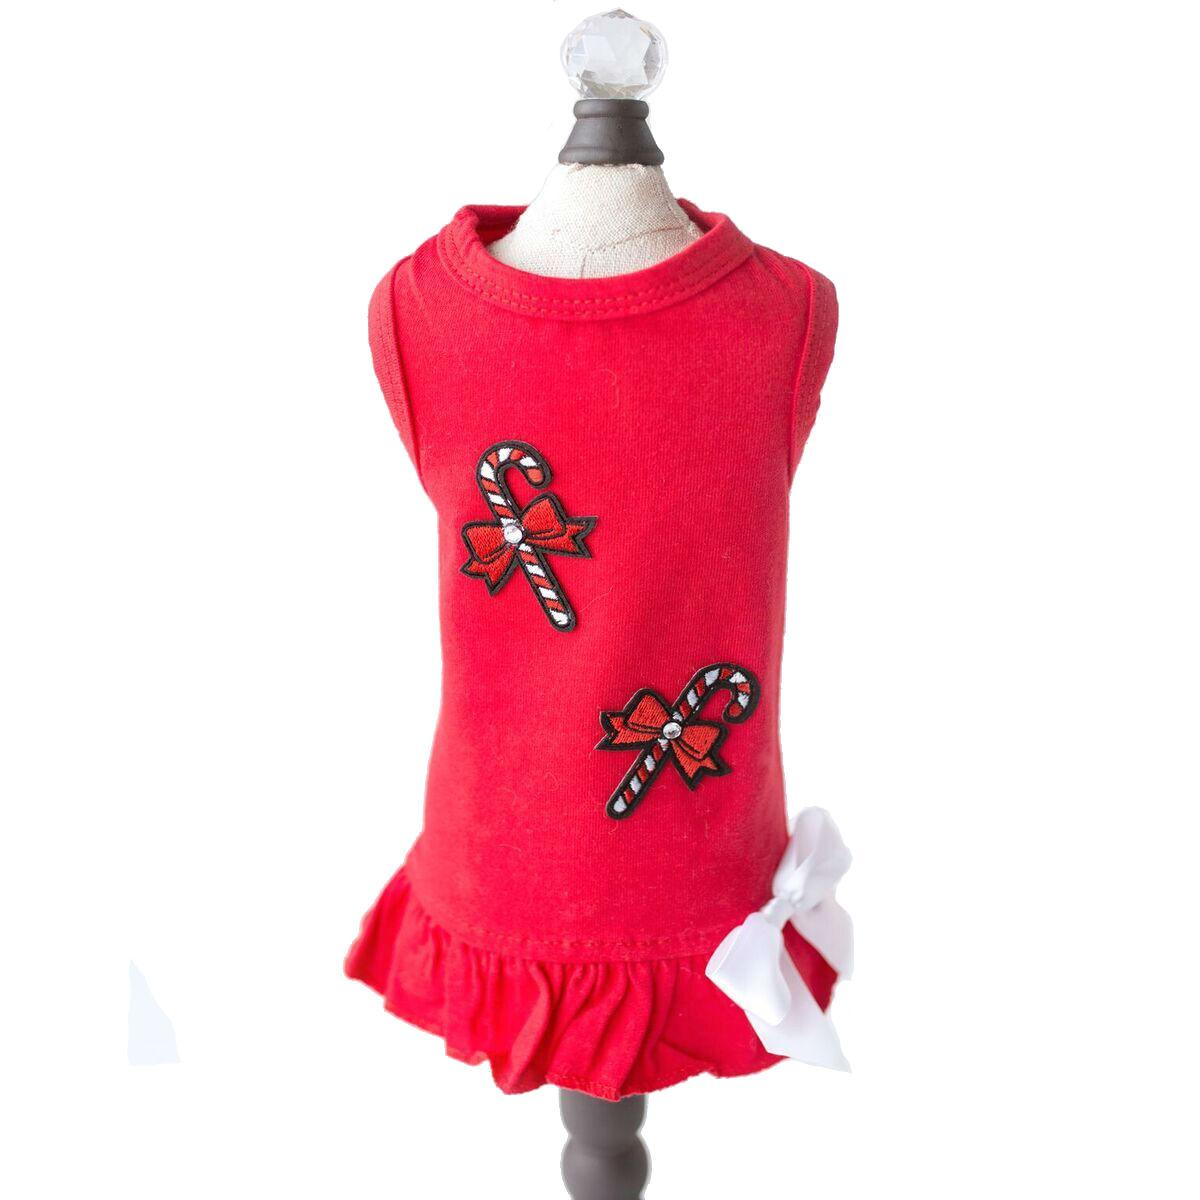 Candy Cane Dog Dress by Hello Doggie - Red